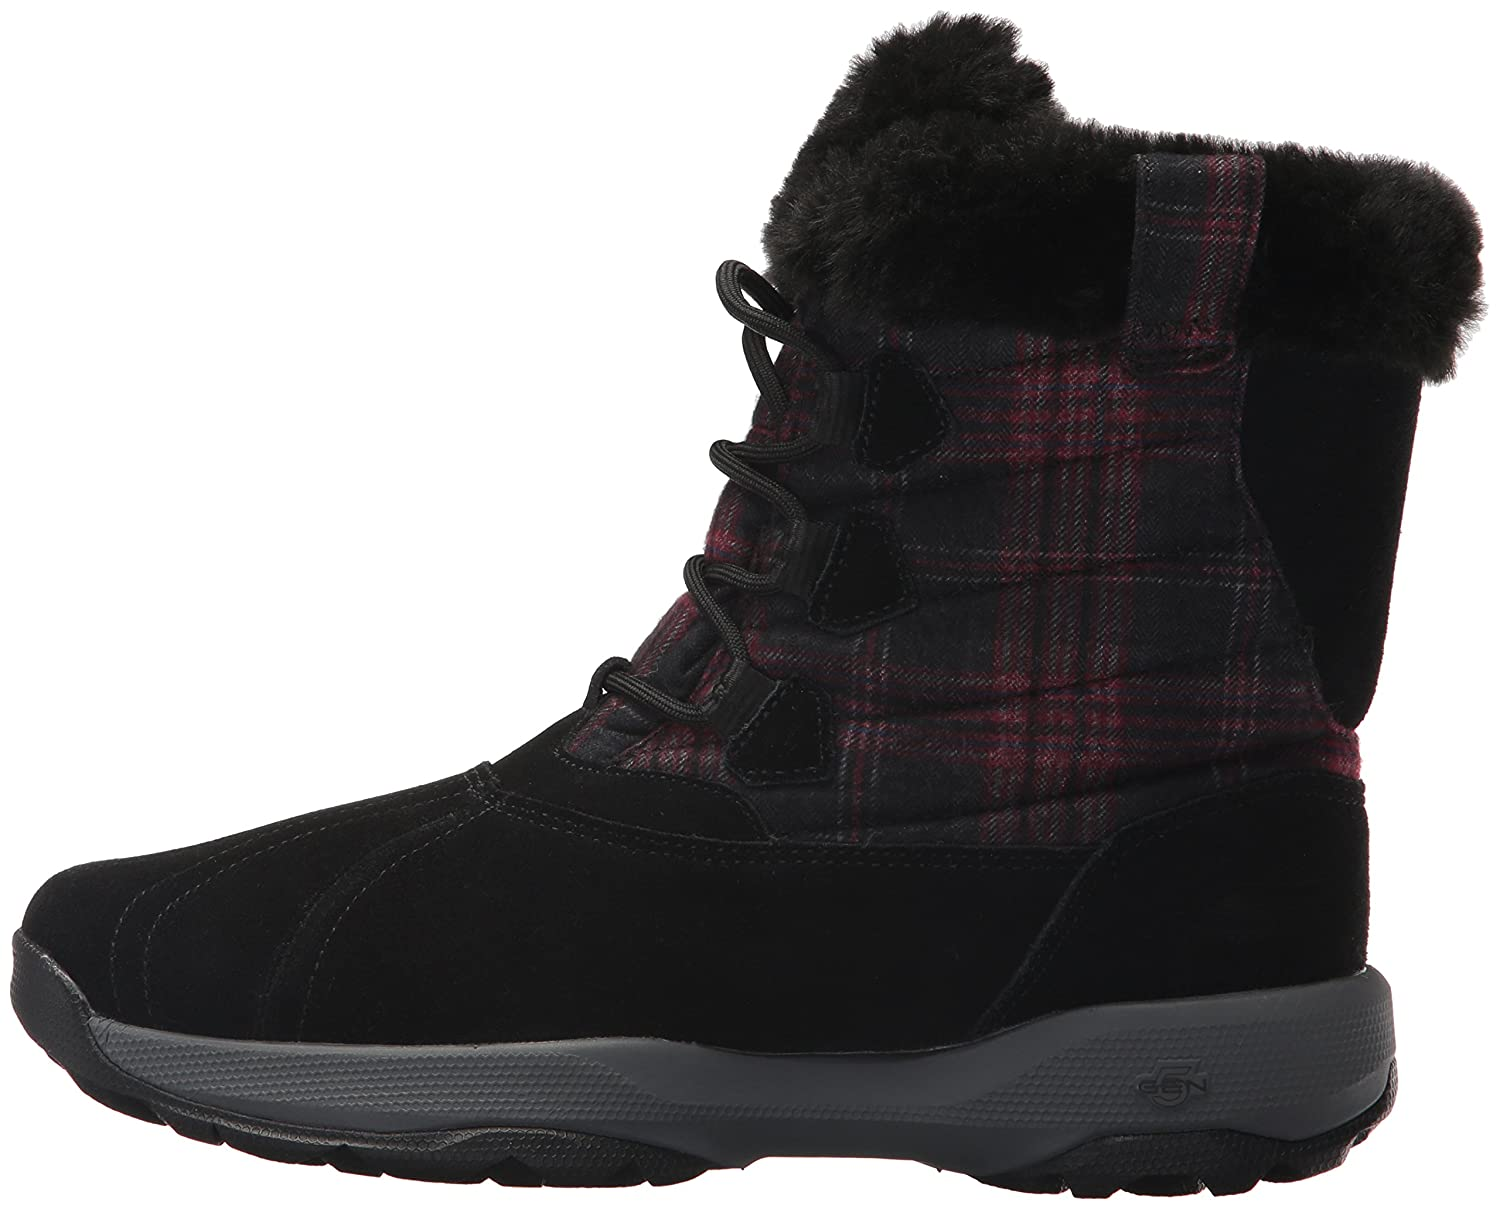 Skechers SkechersGo - Walk Outdoors - Crest - Go Walk Outdoors - SkechersGo Crest Damen 8f7731